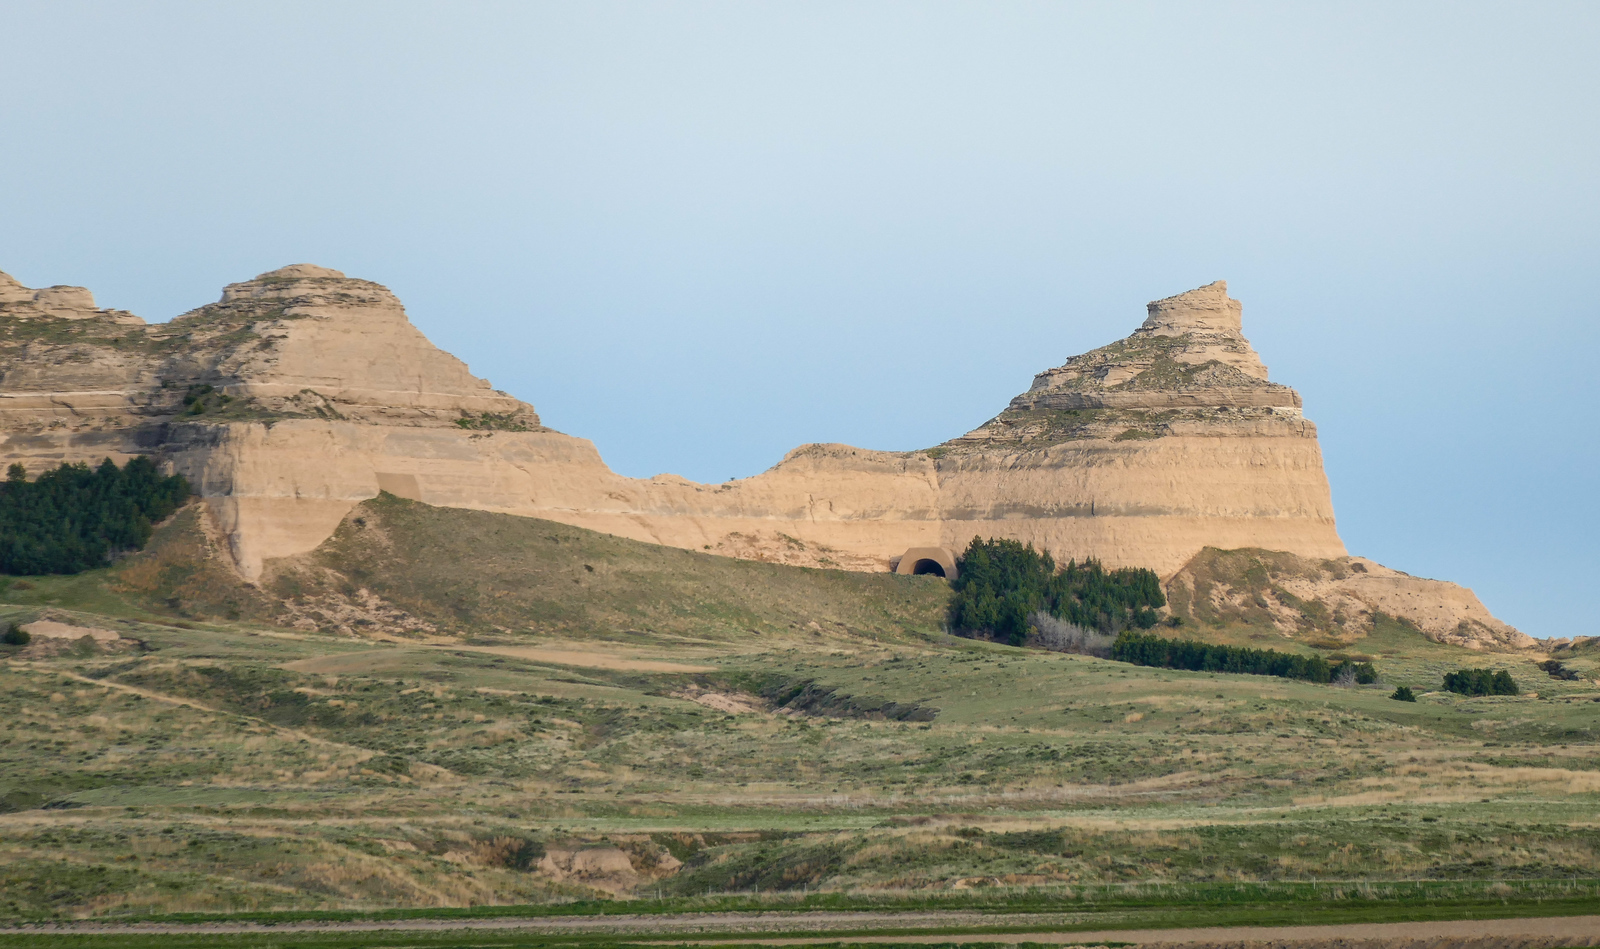 Beige bluffs surrounded by green grass and a blue sky at Scott Bluff National Monument.